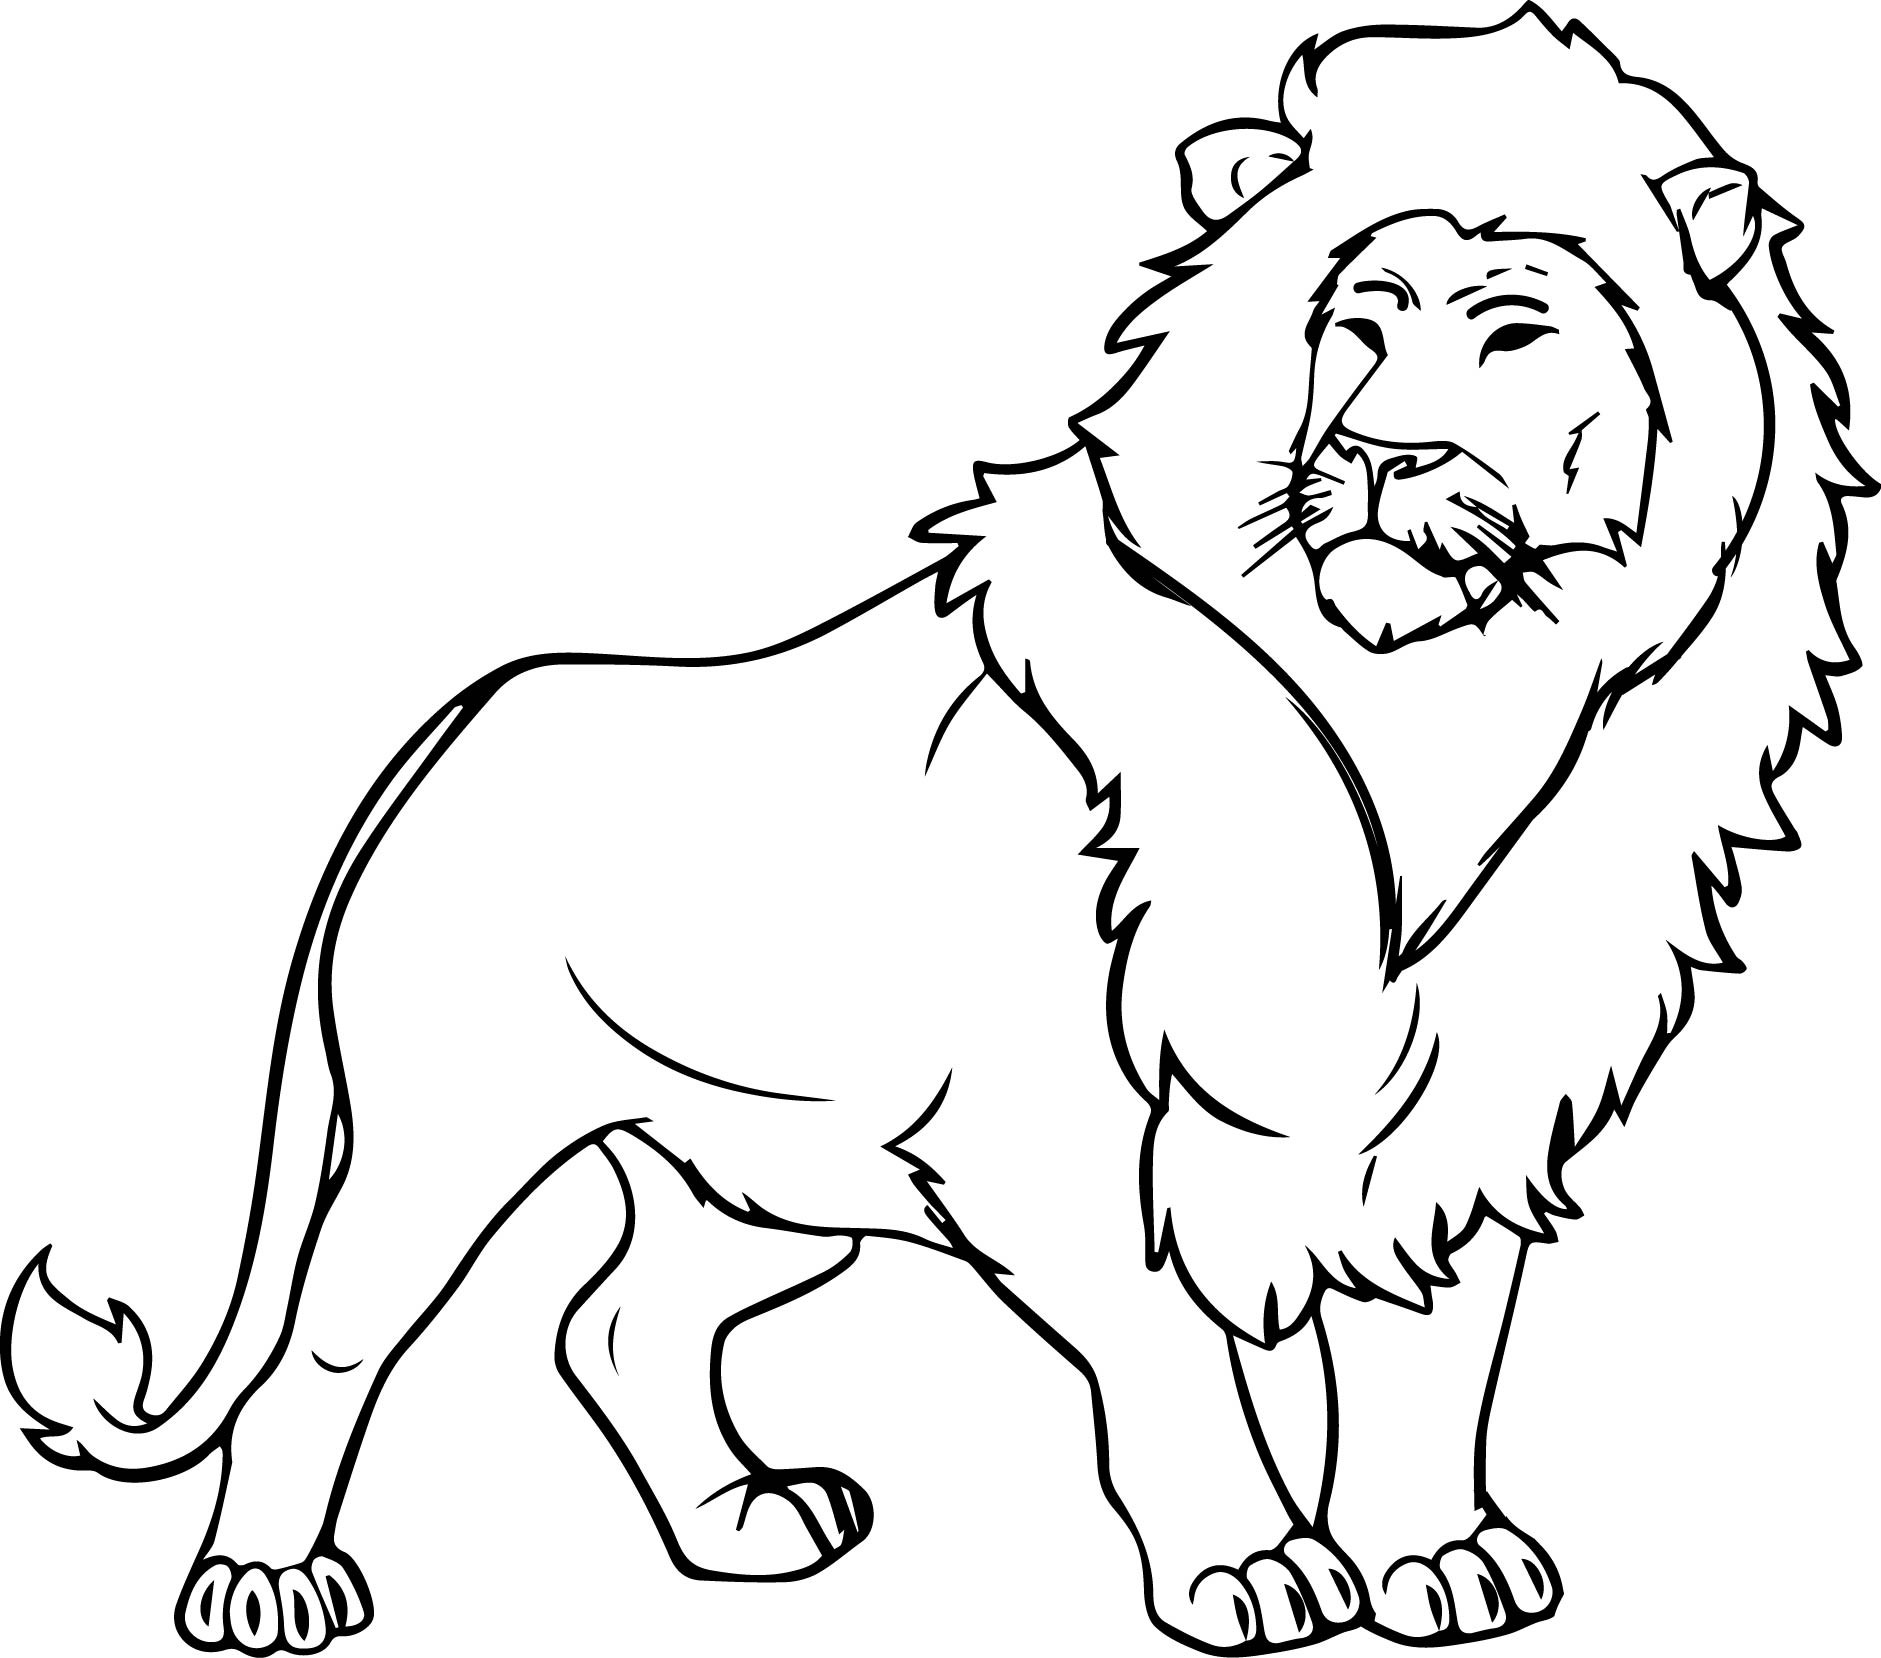 colouring images of lion free easy to print lion coloring pages tulamama of colouring images lion